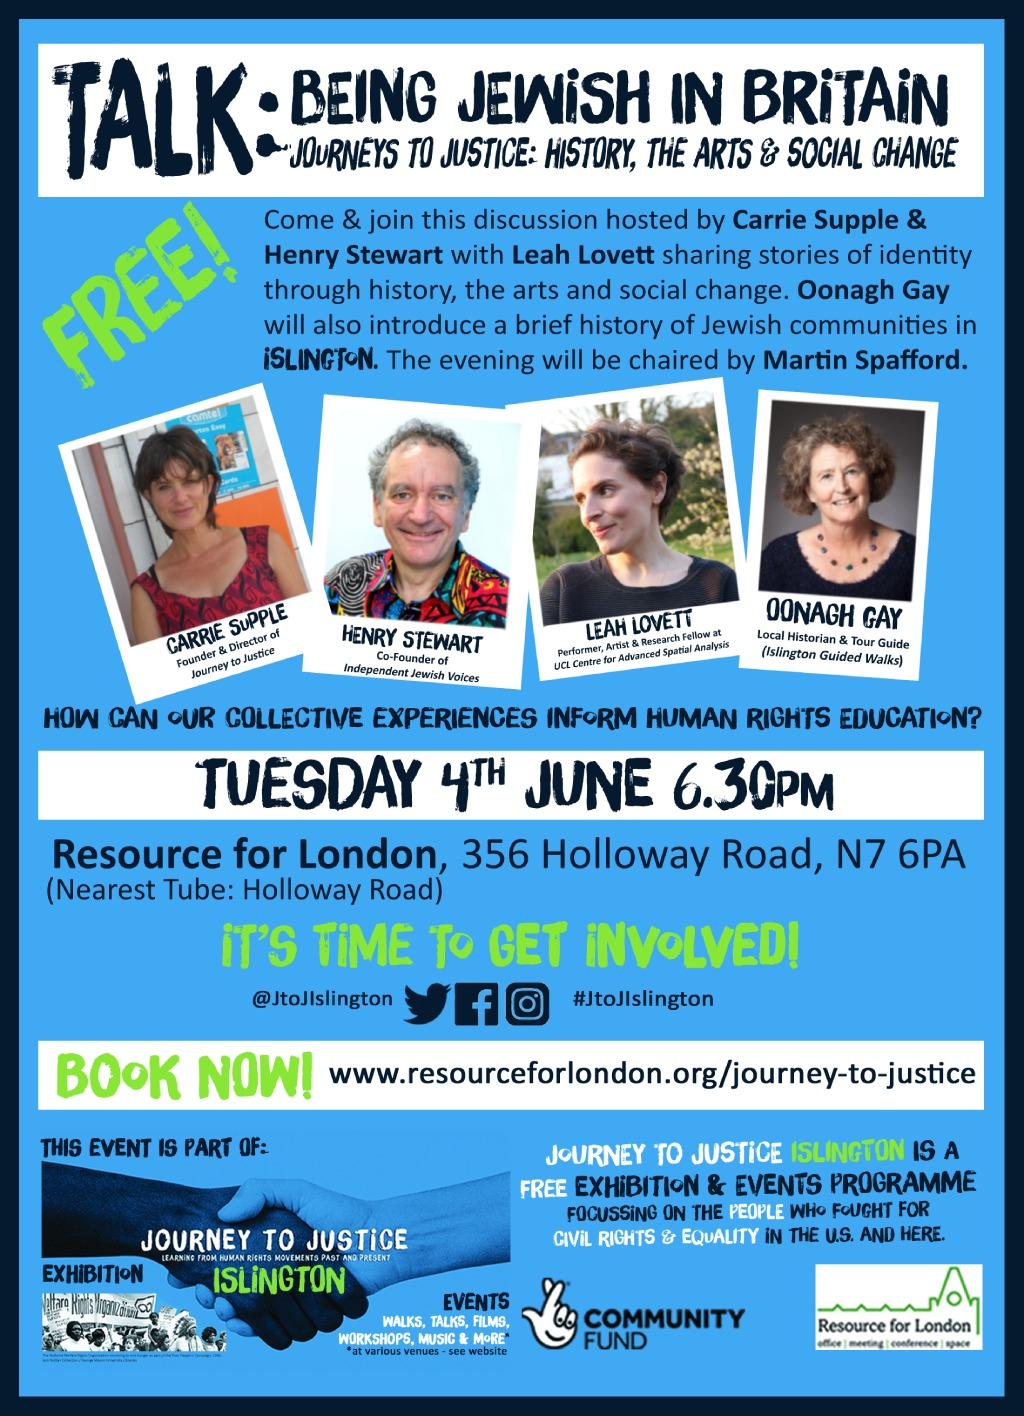 Being Jewish in Britain e-flyer for 4th June event